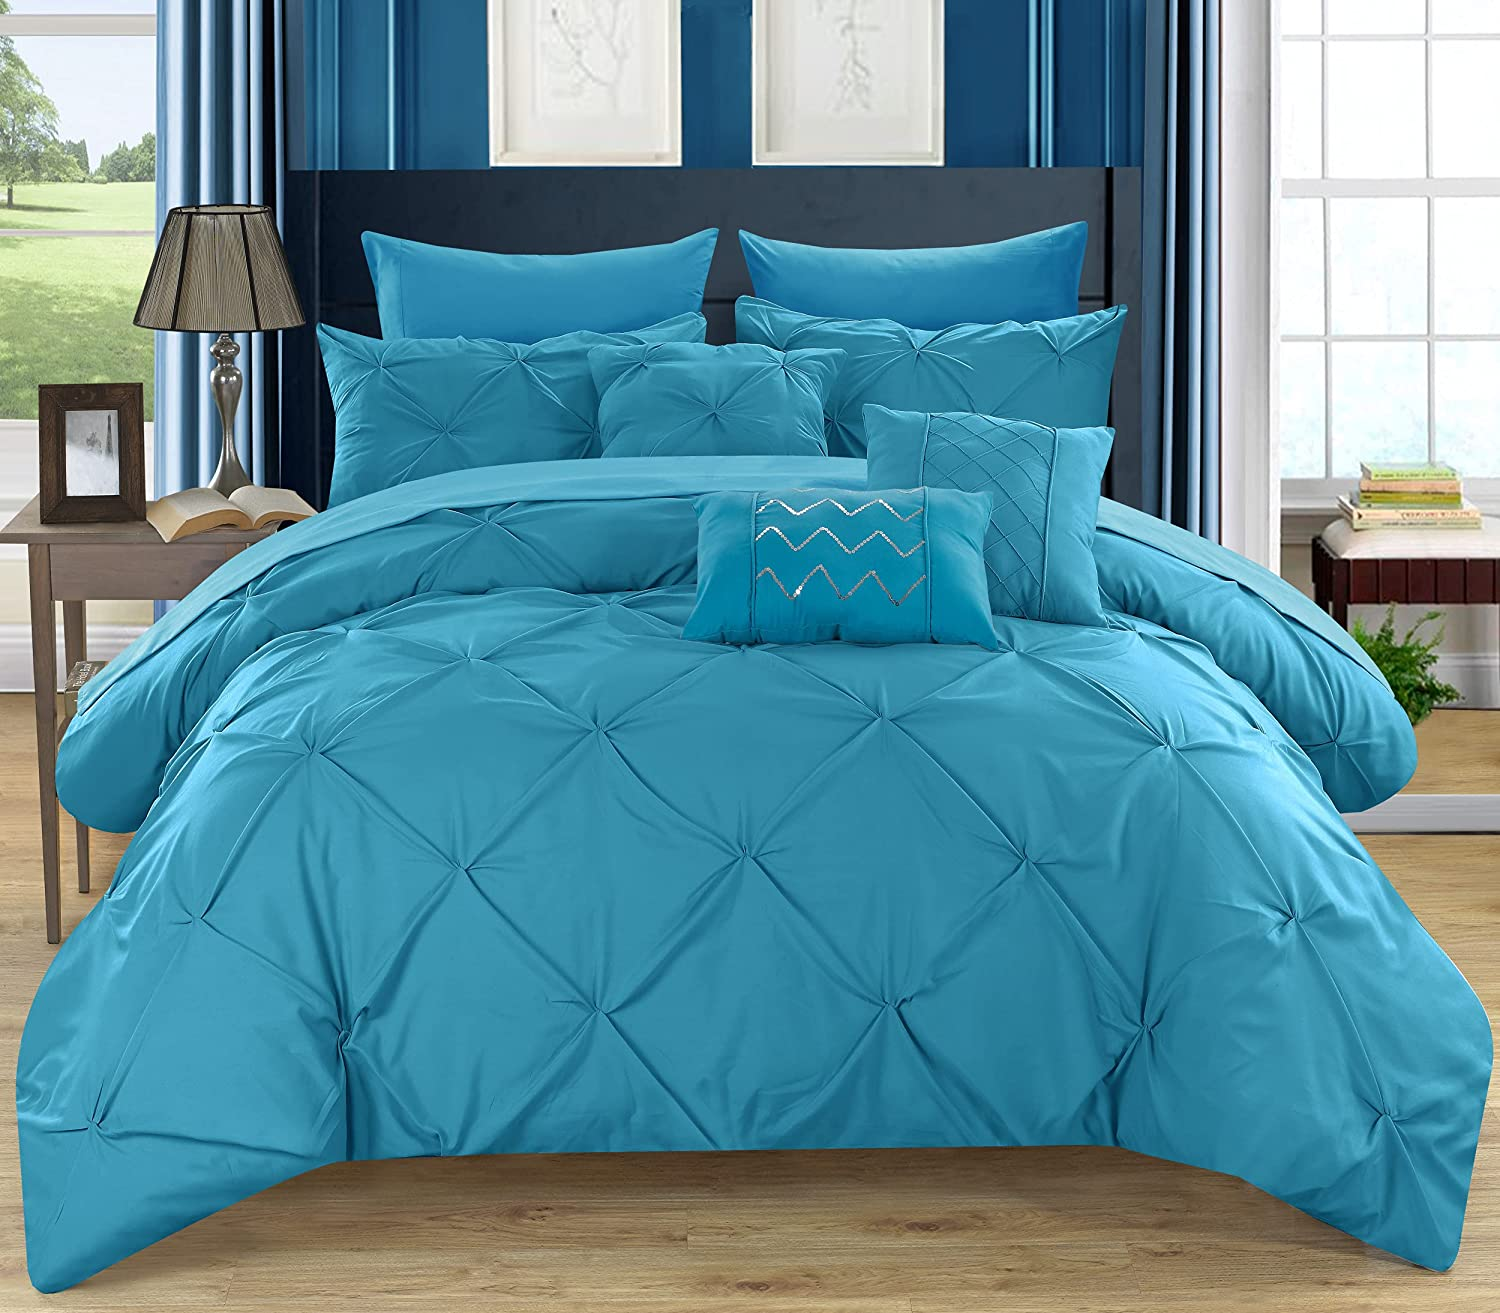 Chic Home 8 Piece Hannah Pinch, Ruffled and Pleated Complete Twin Bed in a Bag Comforter Turquoise Sheets Set and Deocrative Pillows Included